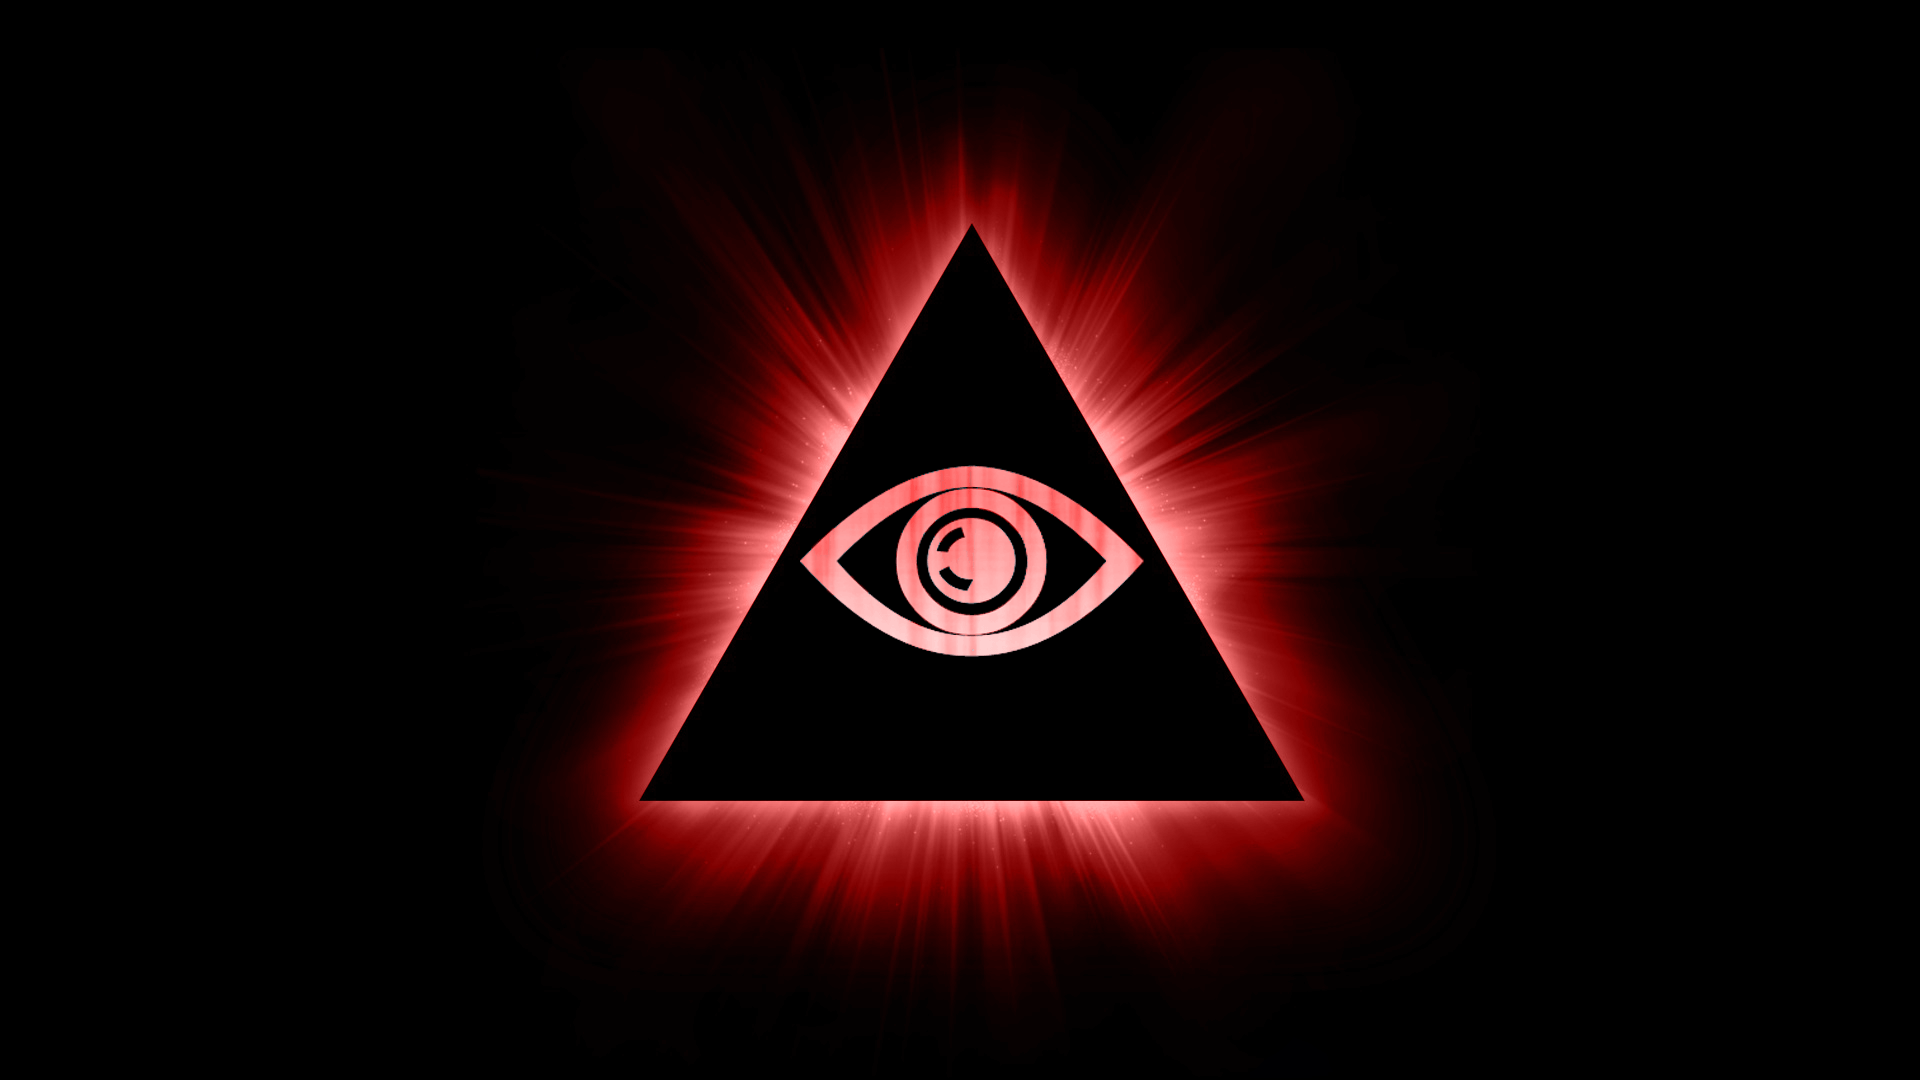 35 Best Free Illuminati Triangle Wallpapers Wallpaperaccess